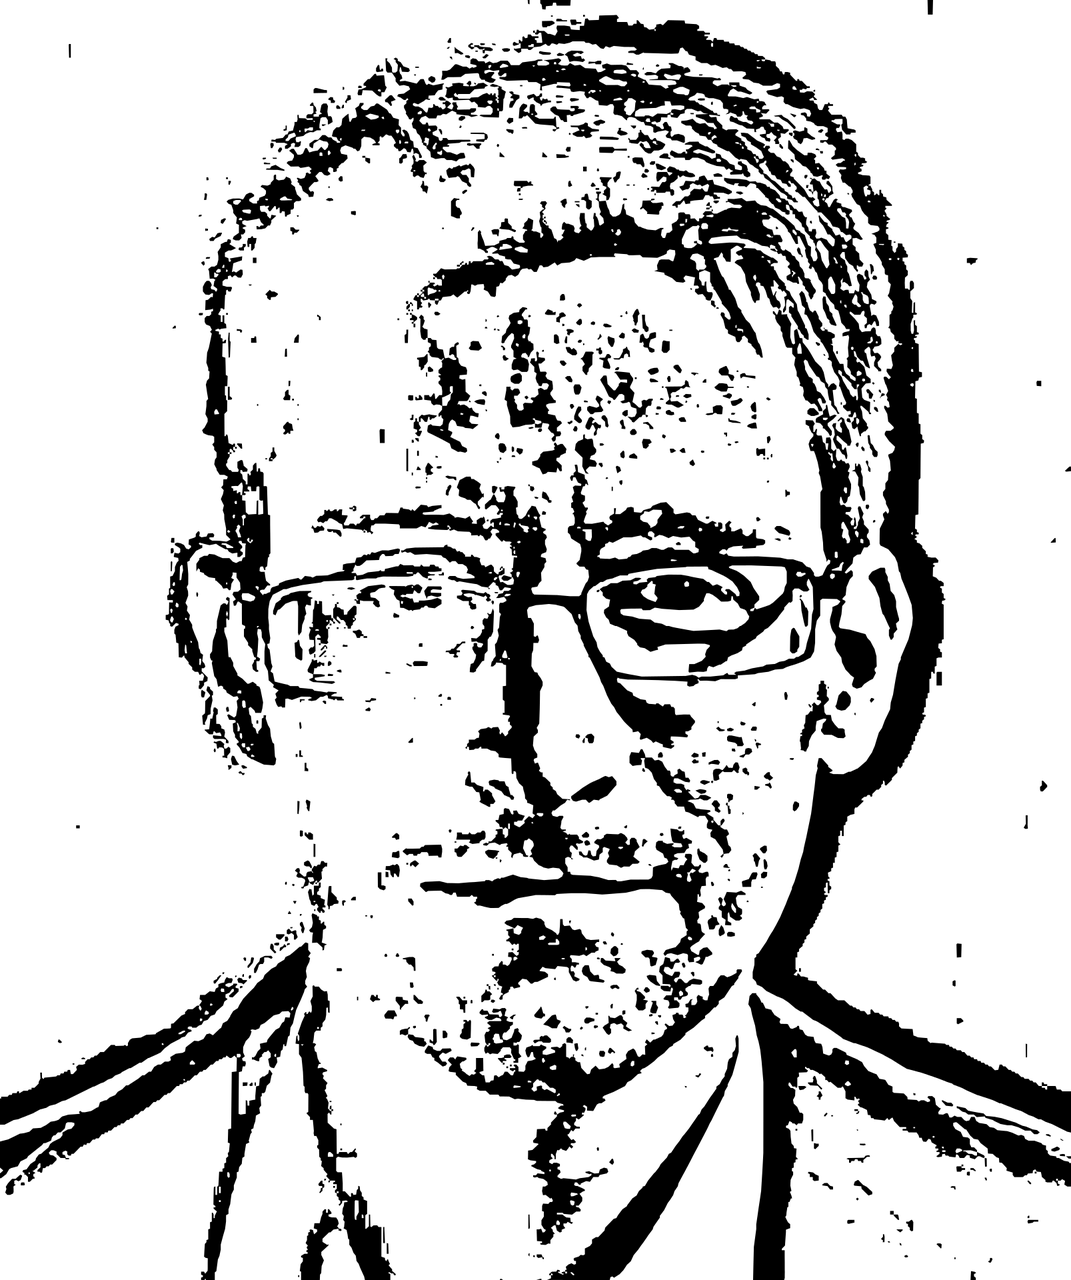 Edward Snowden: whistleblowing is a citizens'right